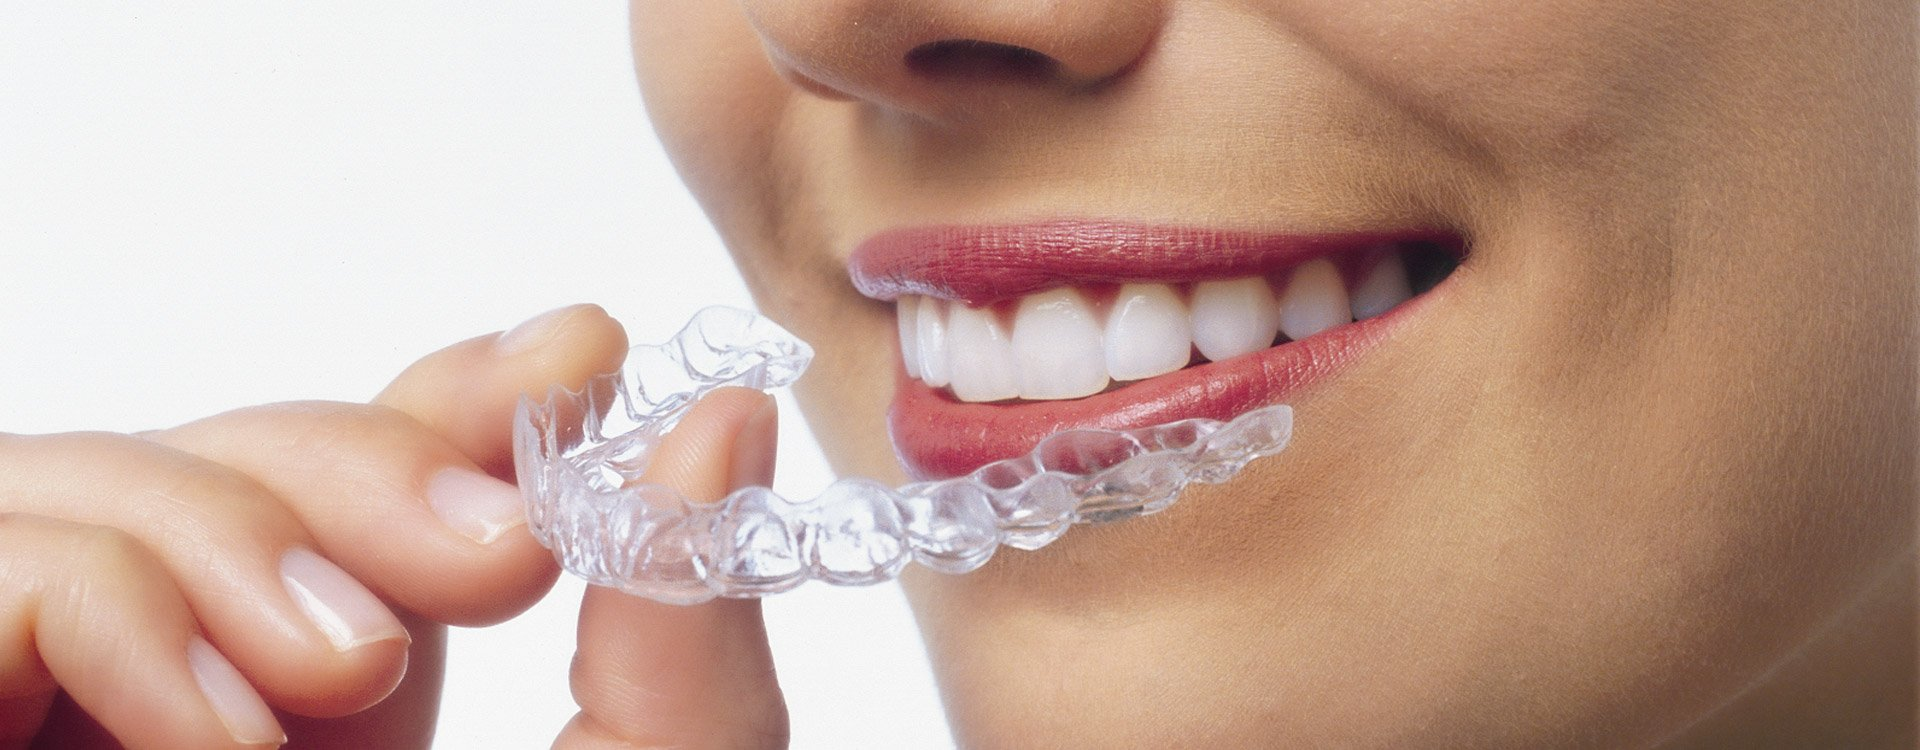 Health Awareness: Few Things to Know About Mouthguards